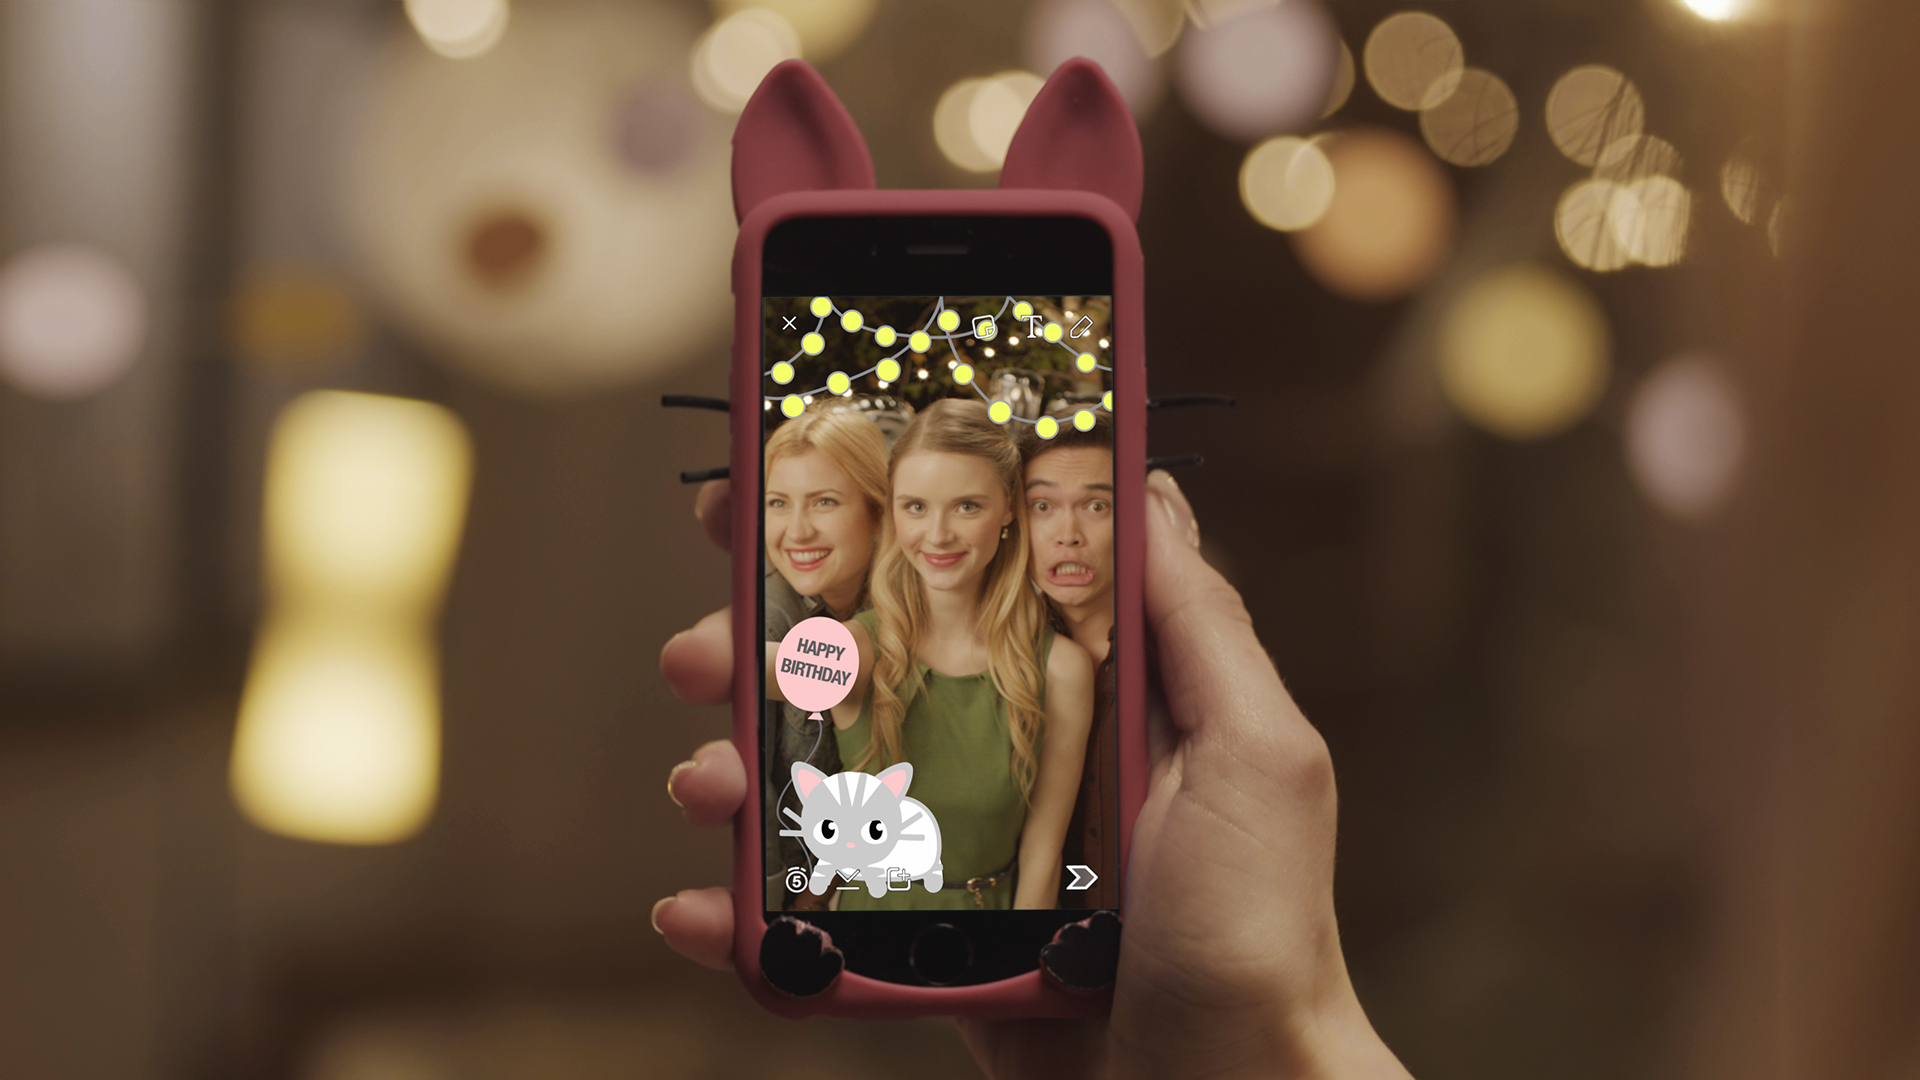 Snapchat wants its users to pay to make their own geofilters